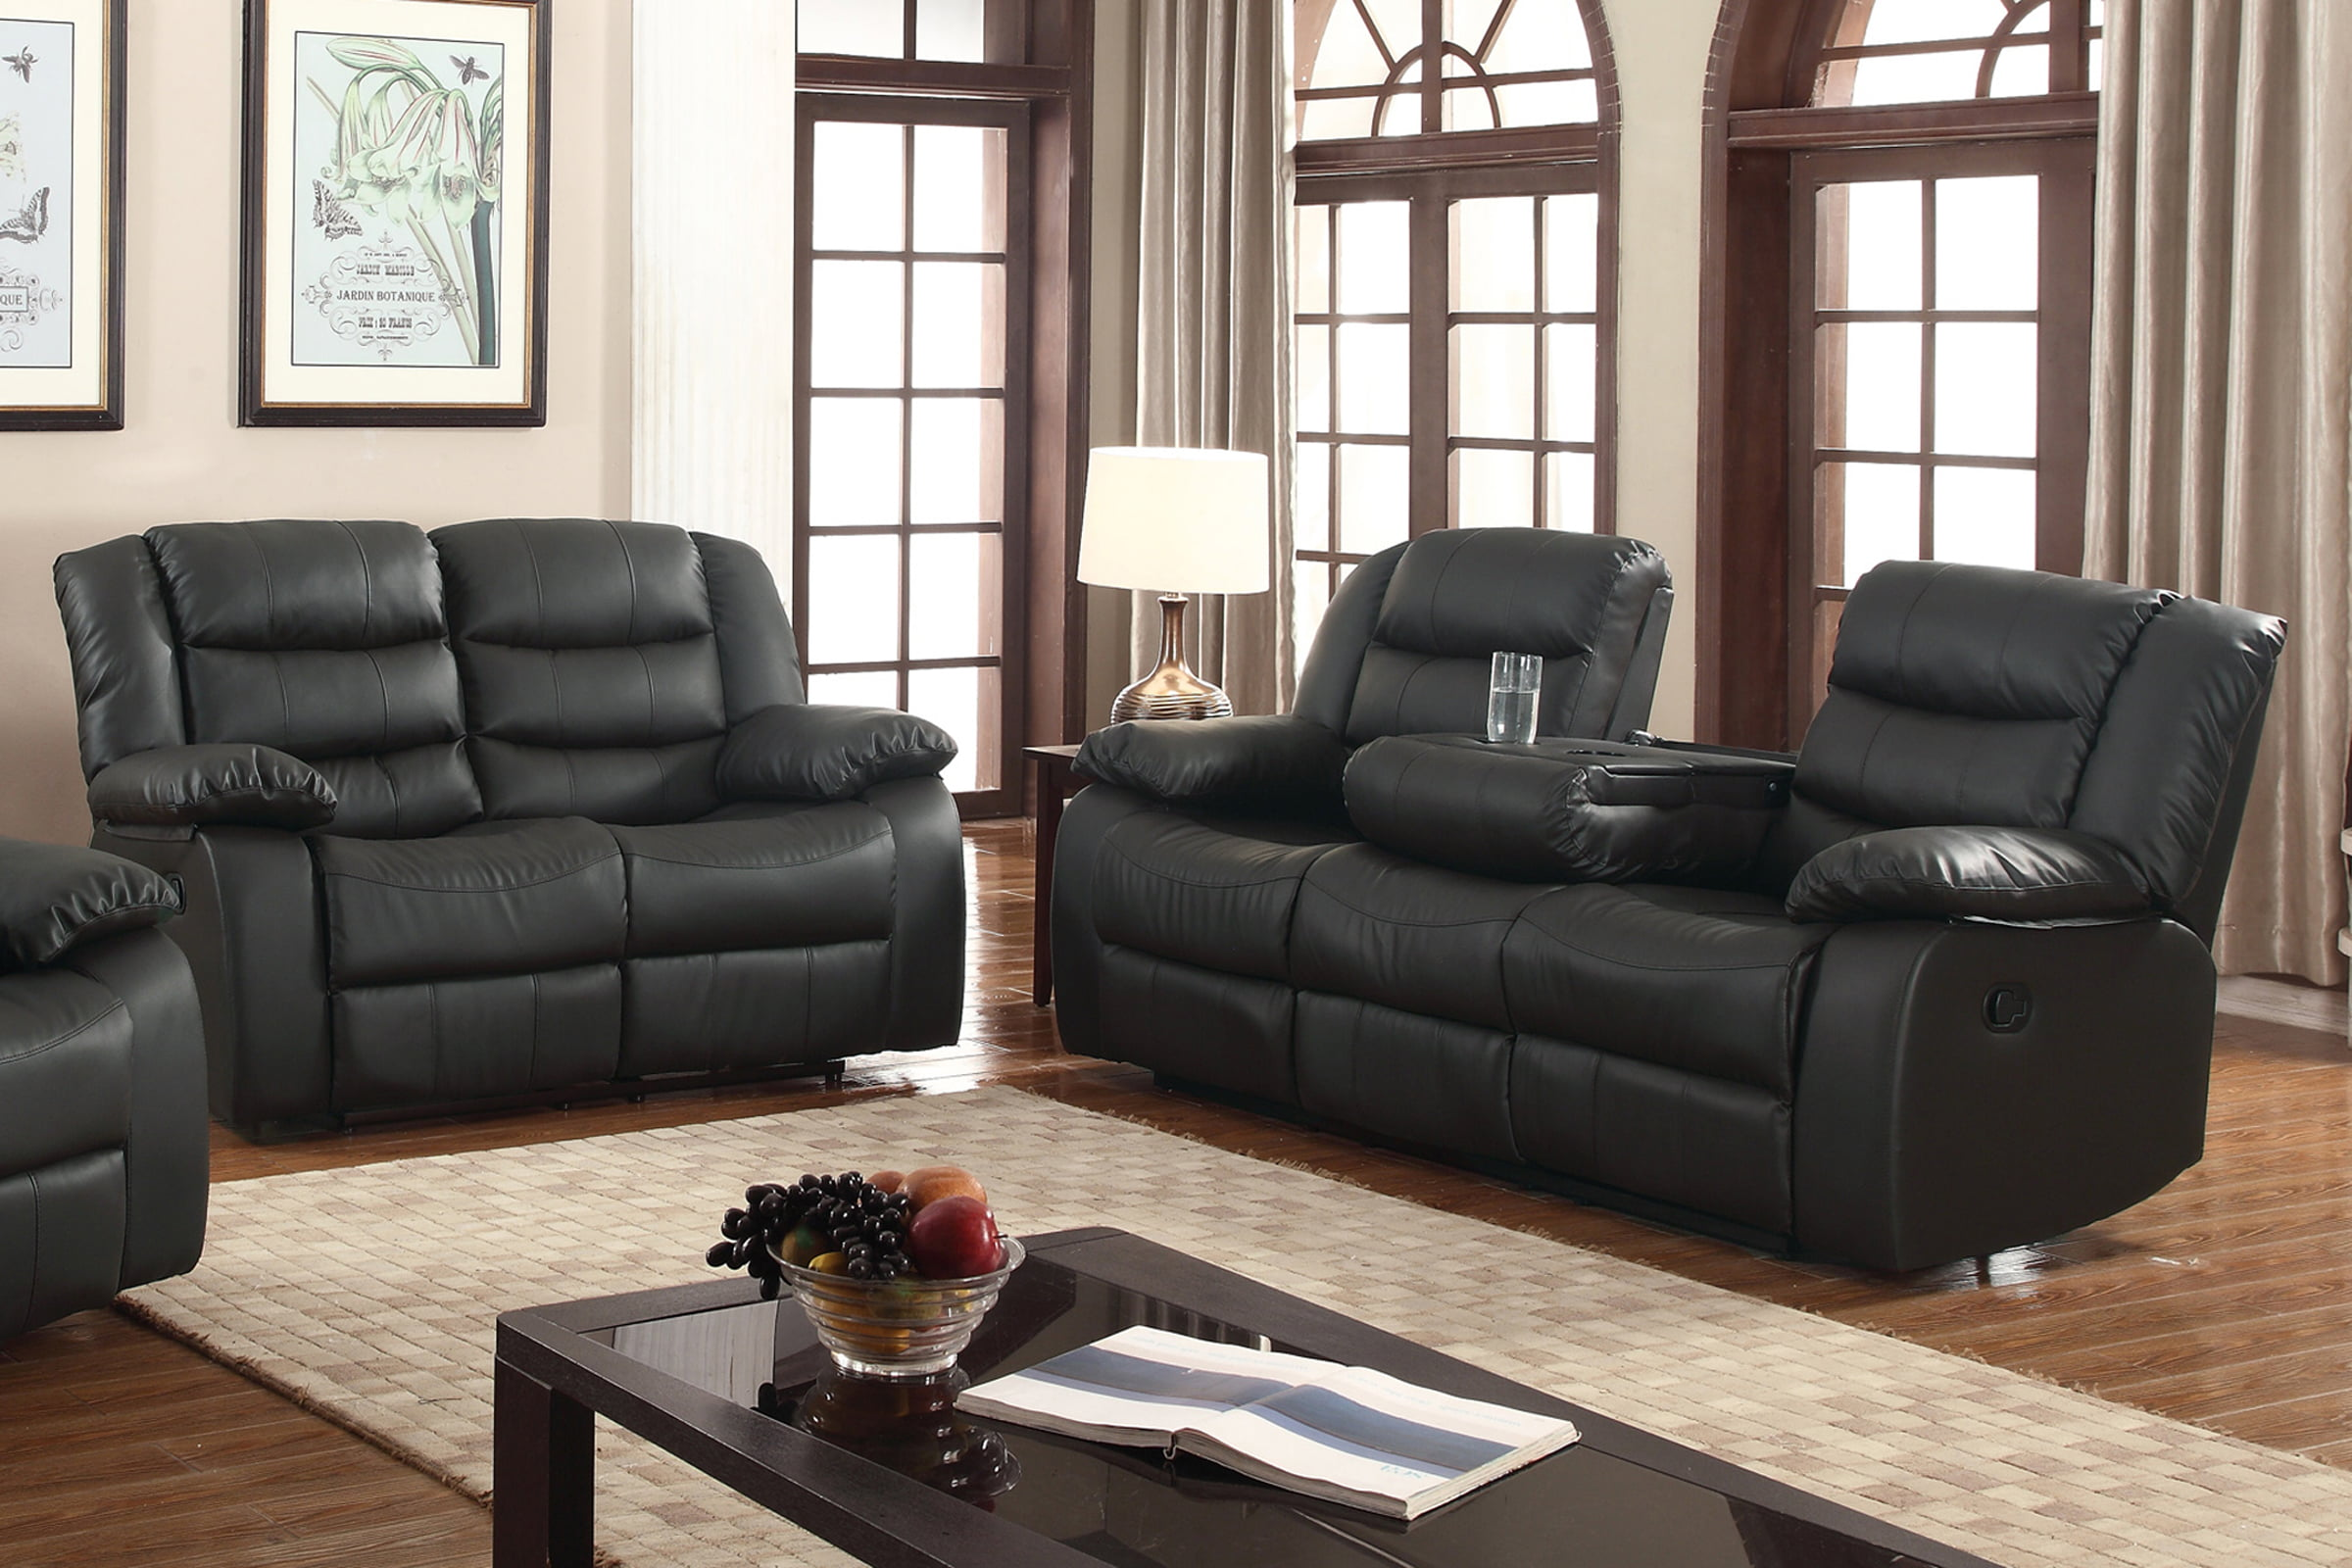 Layla 2 pc Black Faux Leather Living Room Reclining Sofa and Loveseat set  with Drop-down tea table